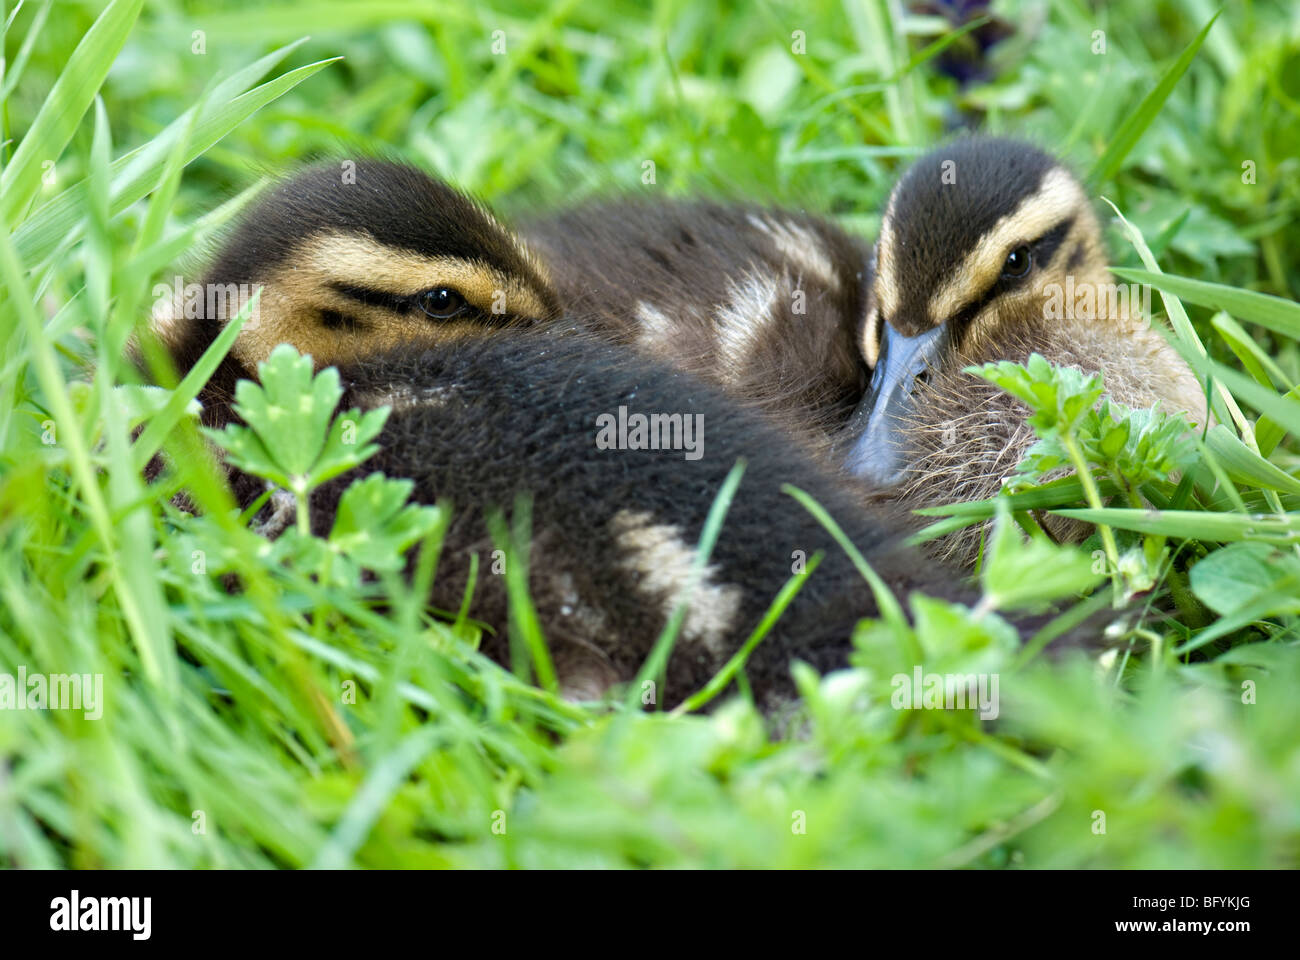 A close up shot of a pair of mallard ducklings resting together in grass - Stock Image